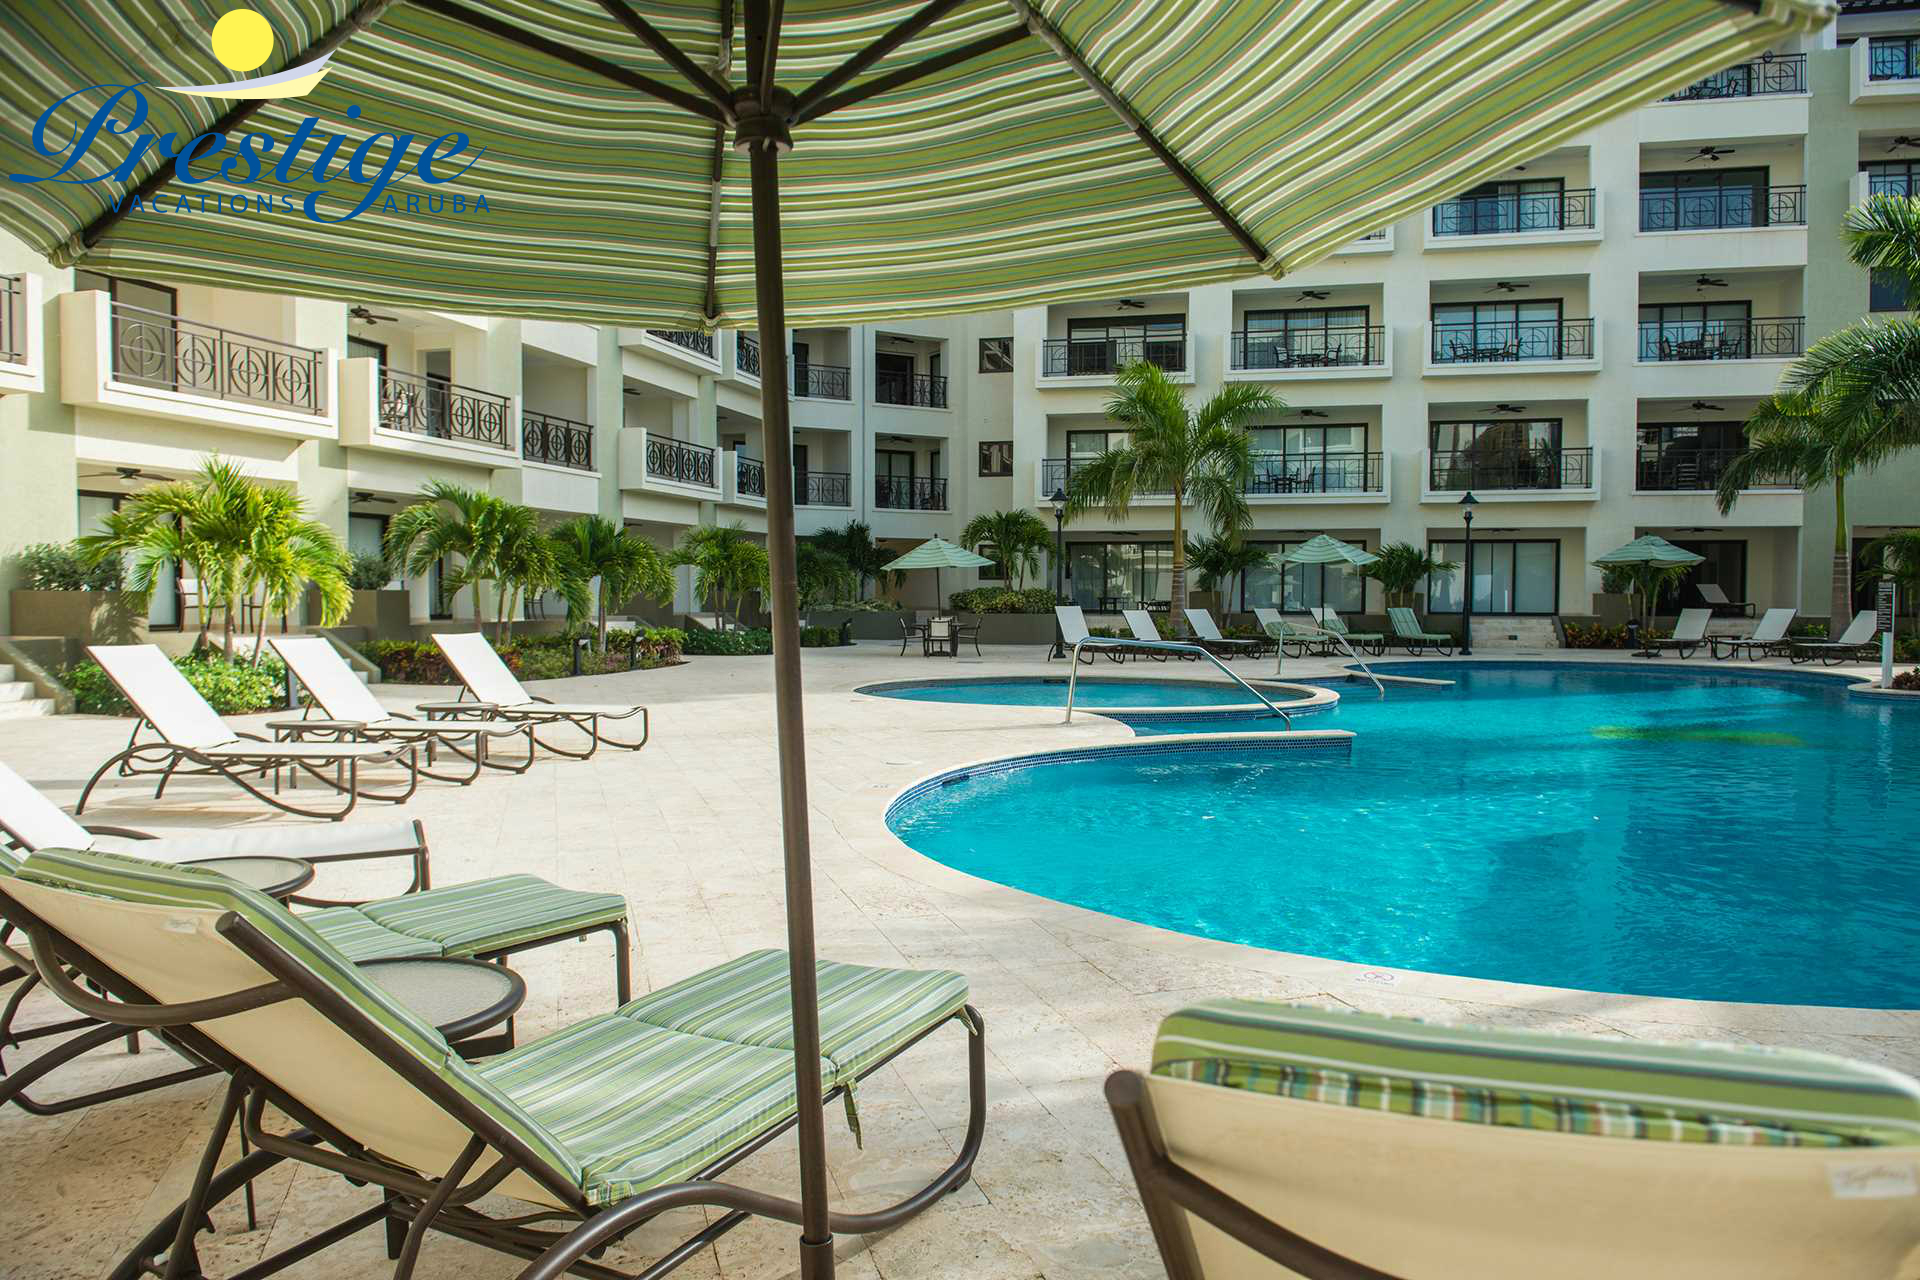 Loungers chairs, pool towels, and parasols are all included during your stay!